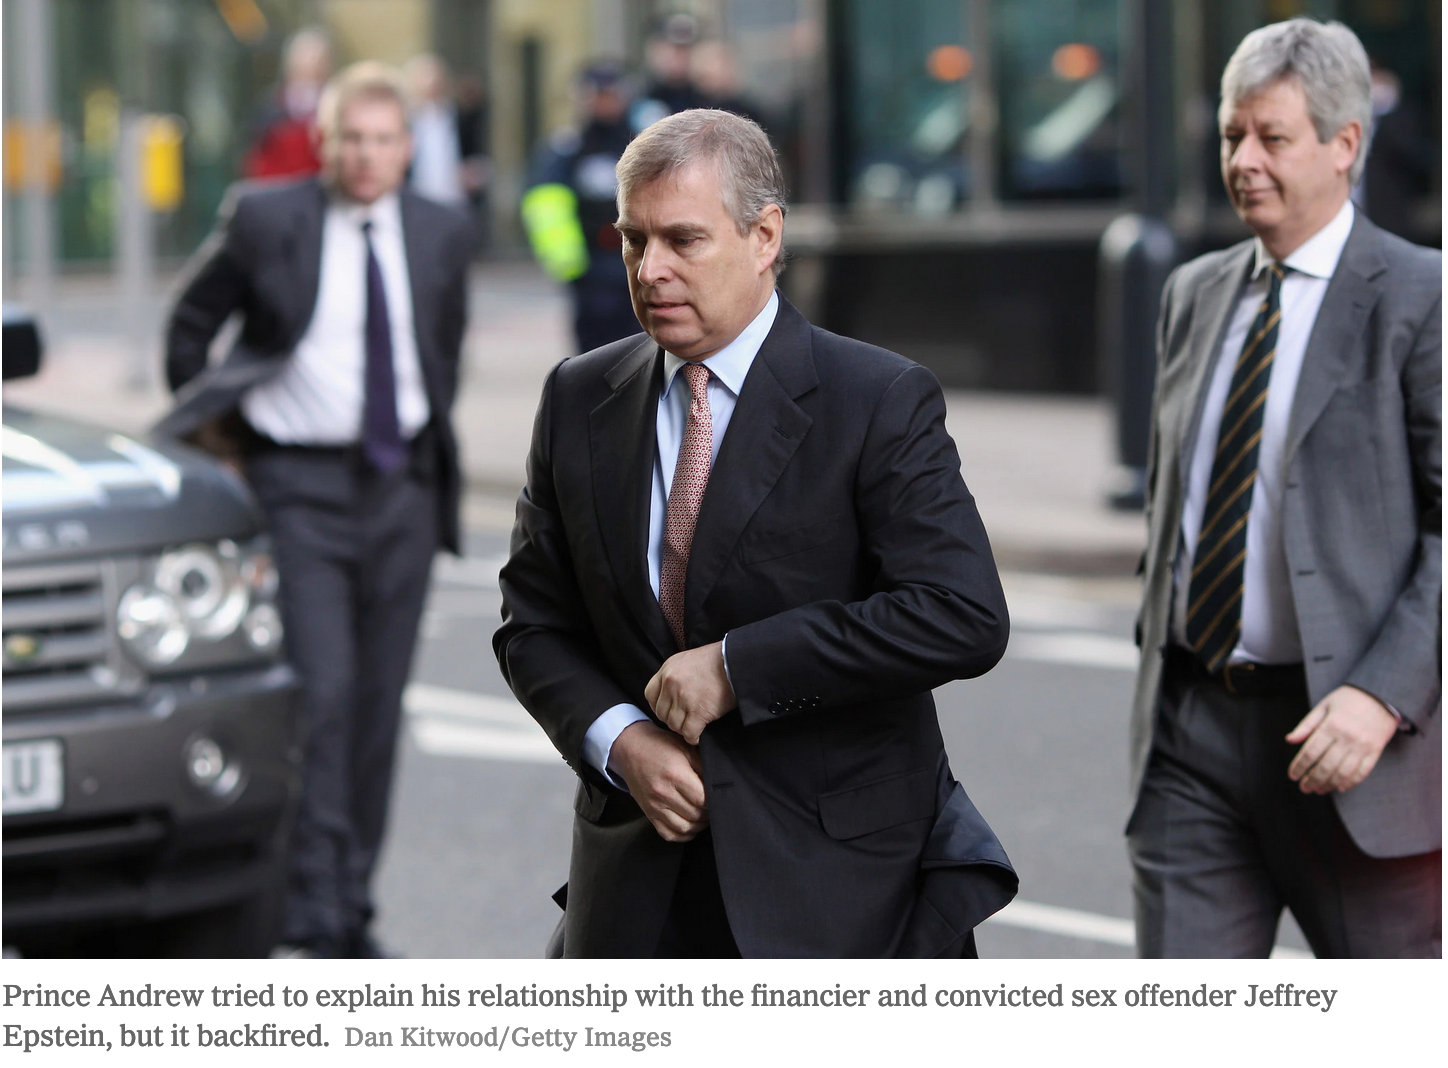 Prince Andrew Talks About His Ties to Jeffrey Epstein and Britain Is Appalled